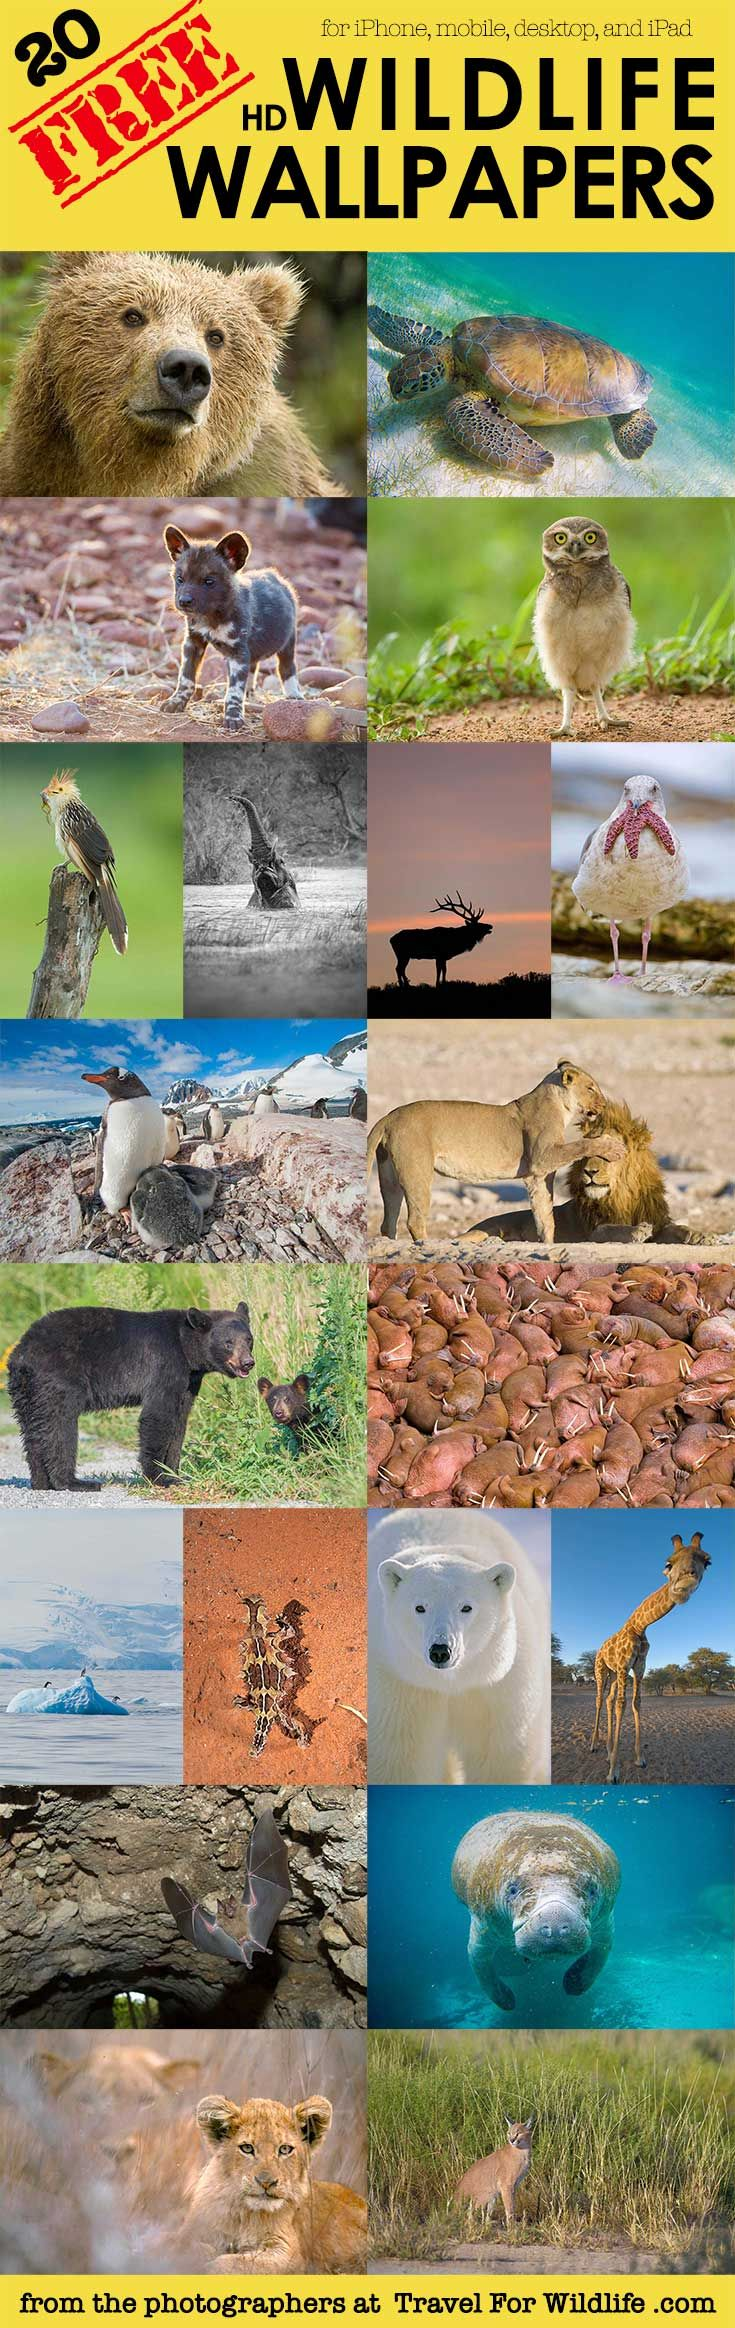 Cool Backgrounds & Animal Wallpapers for Phone and Desktop